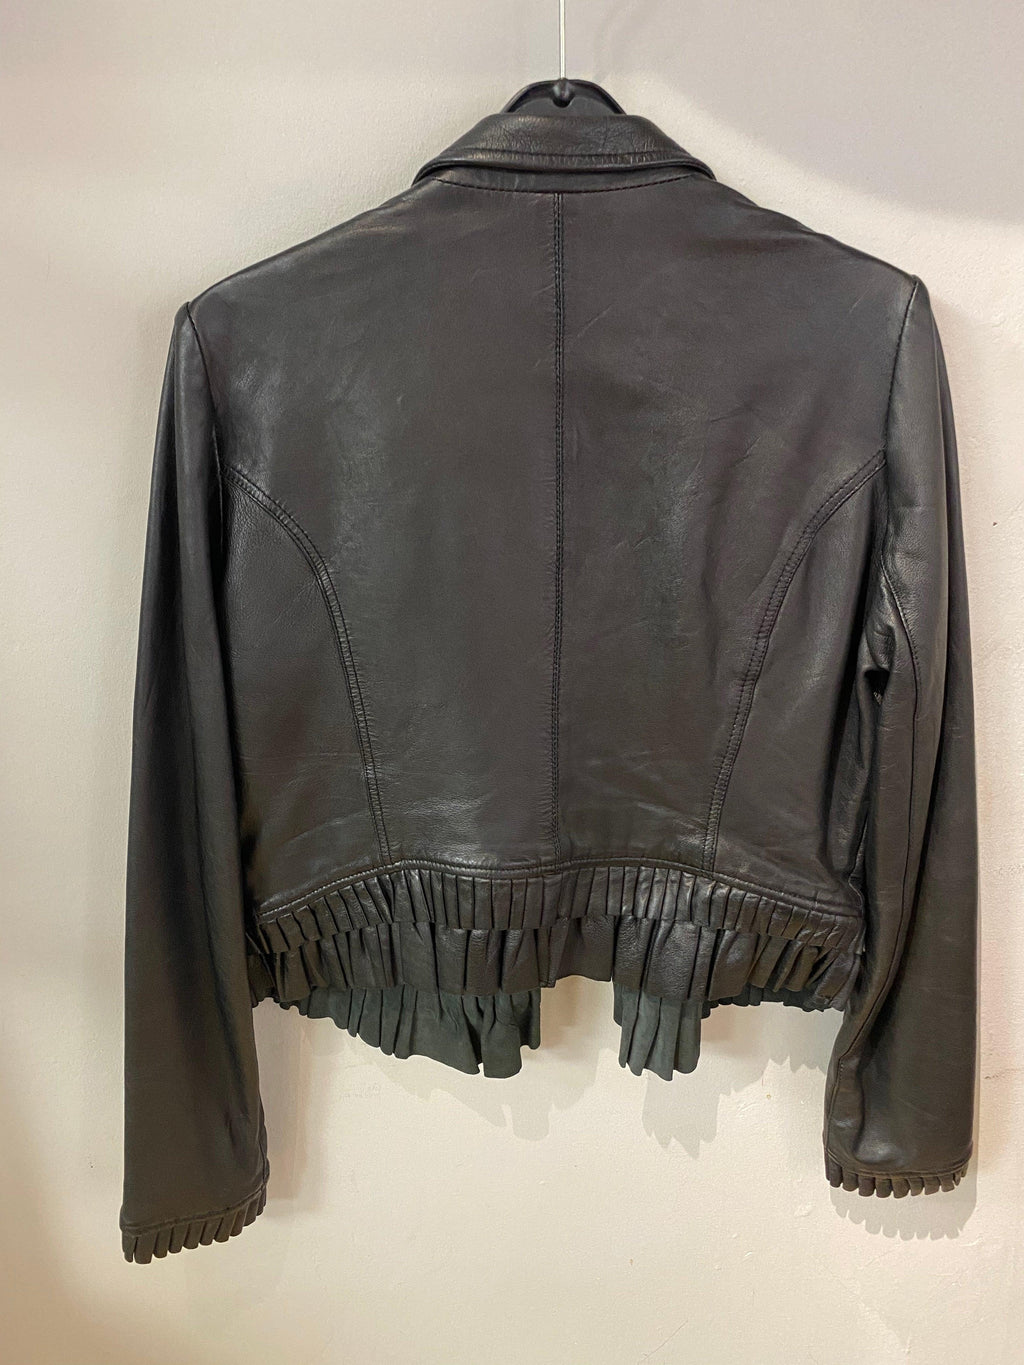 Vintage Saint Tropez Black Leather Jacket with ruffle hem UK size M